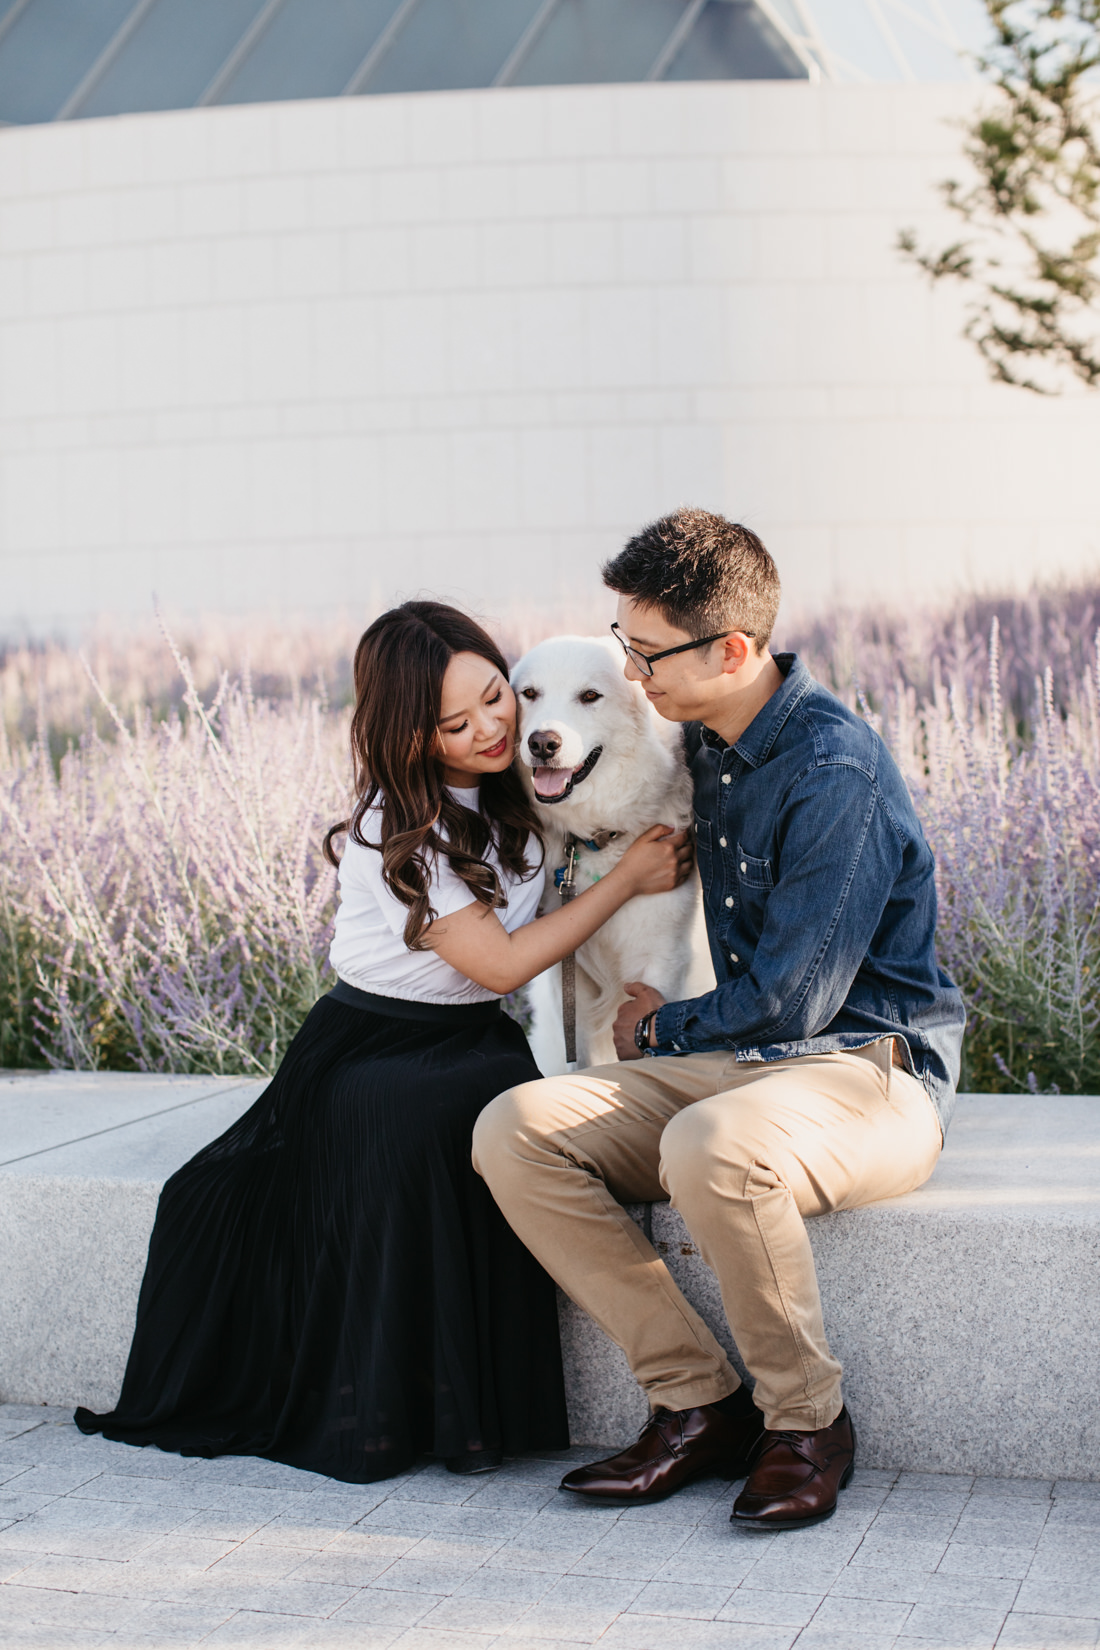 Engagement Photos with dog | Aga Khan Museum engagement | lavender portrait location | Toronto Wedding Photographer | EightyFifth Street Photography